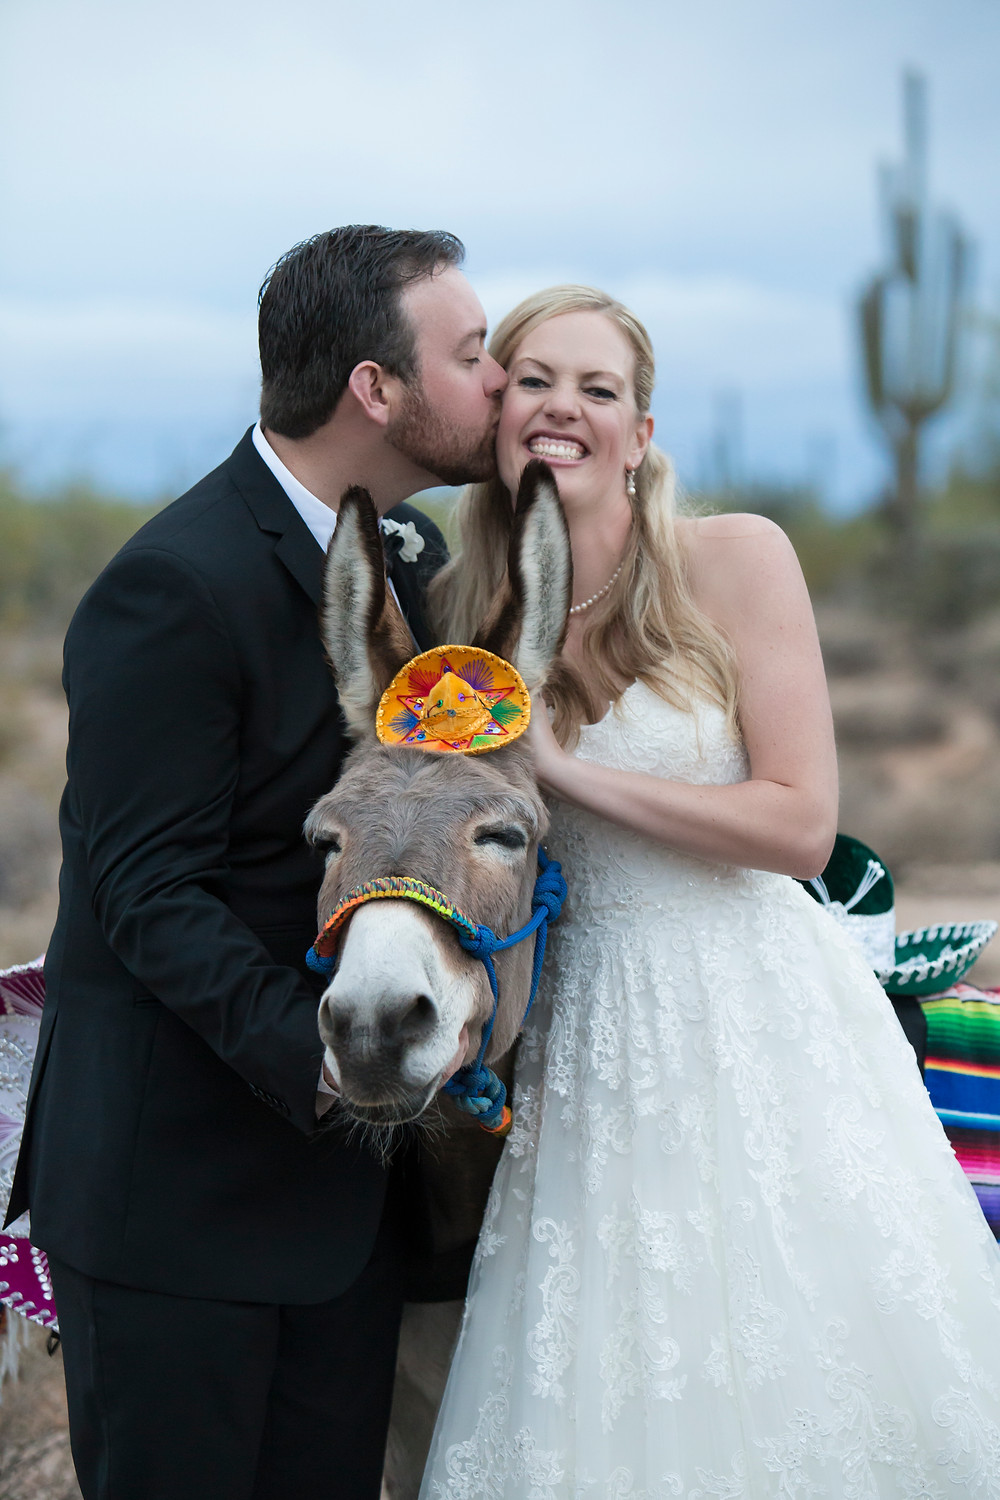 a groom kisses his bride over a beer burro